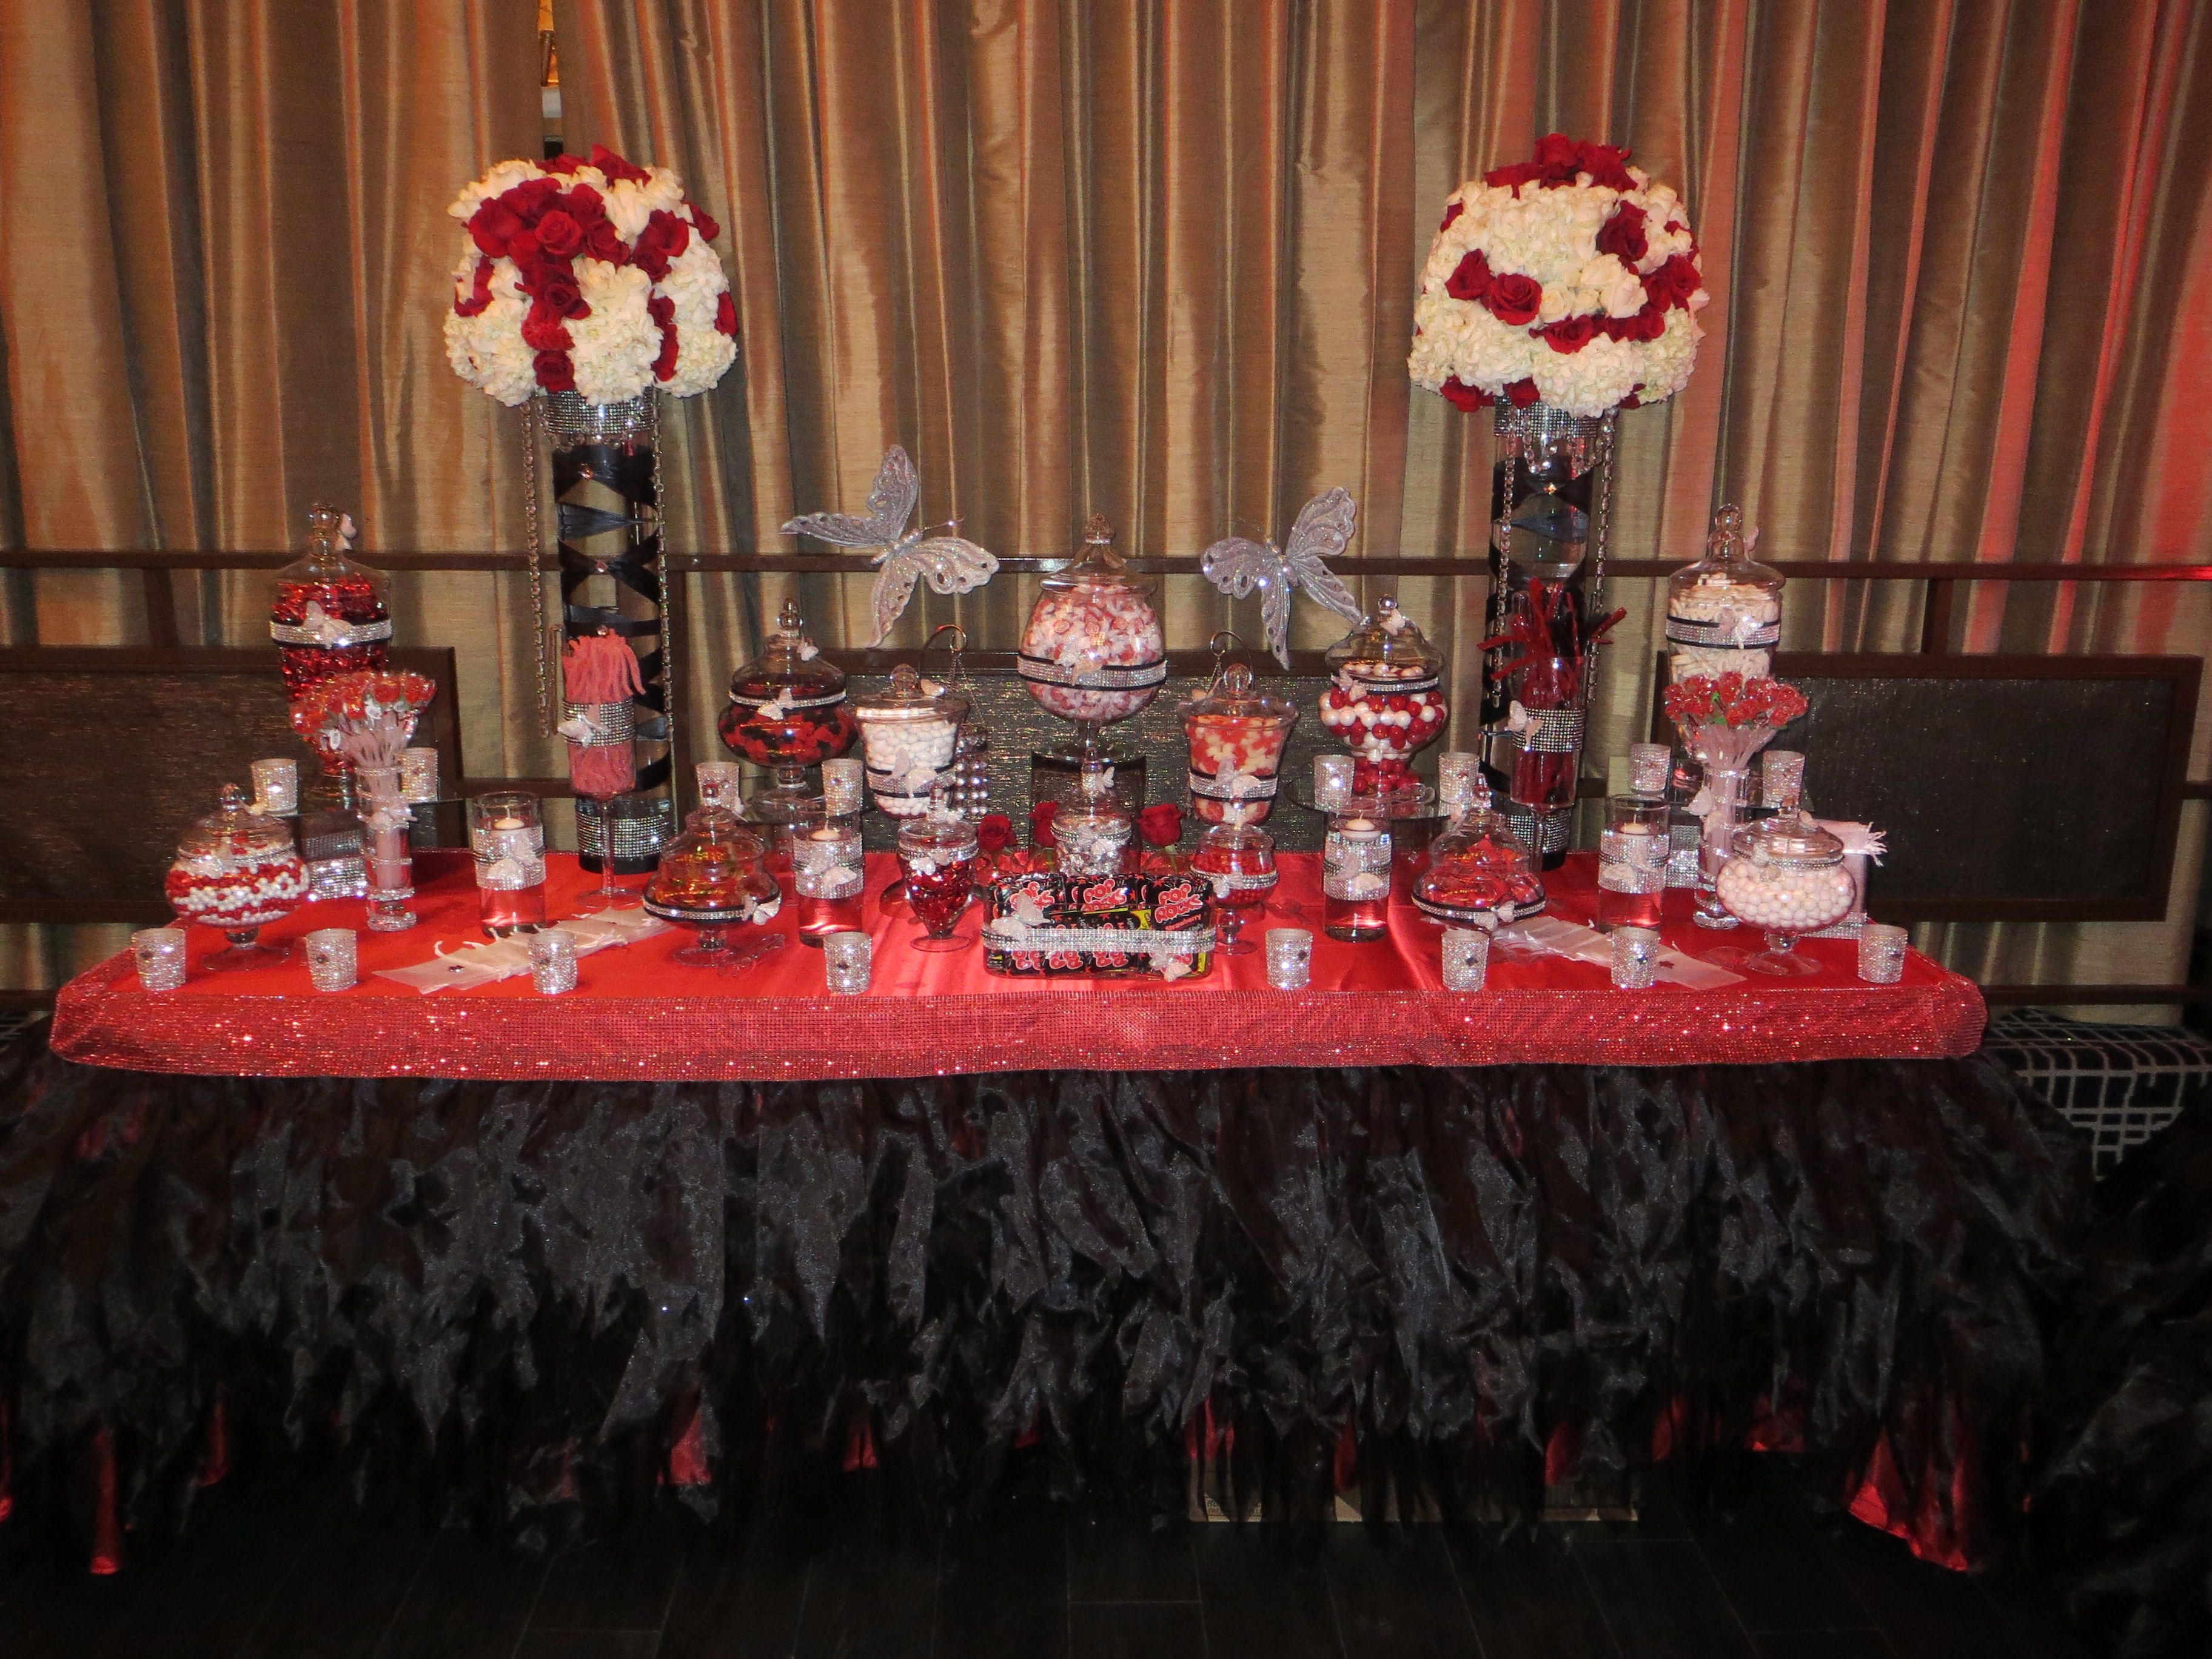 Centerpieces & candy station